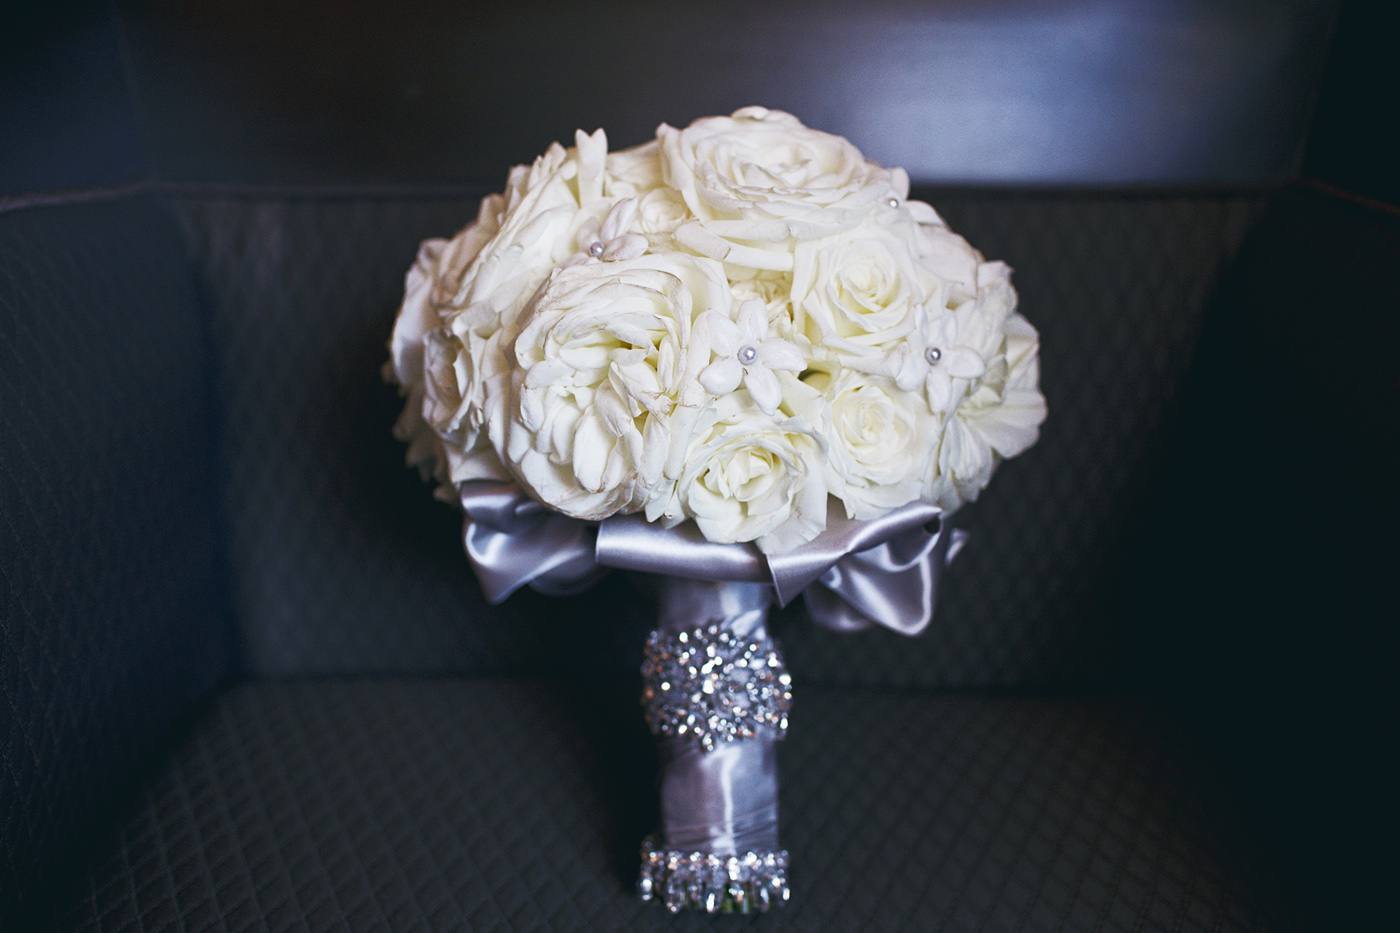 02DukePhotography_DukeImages_weddings_D2_IMG_0502 (1).jpg